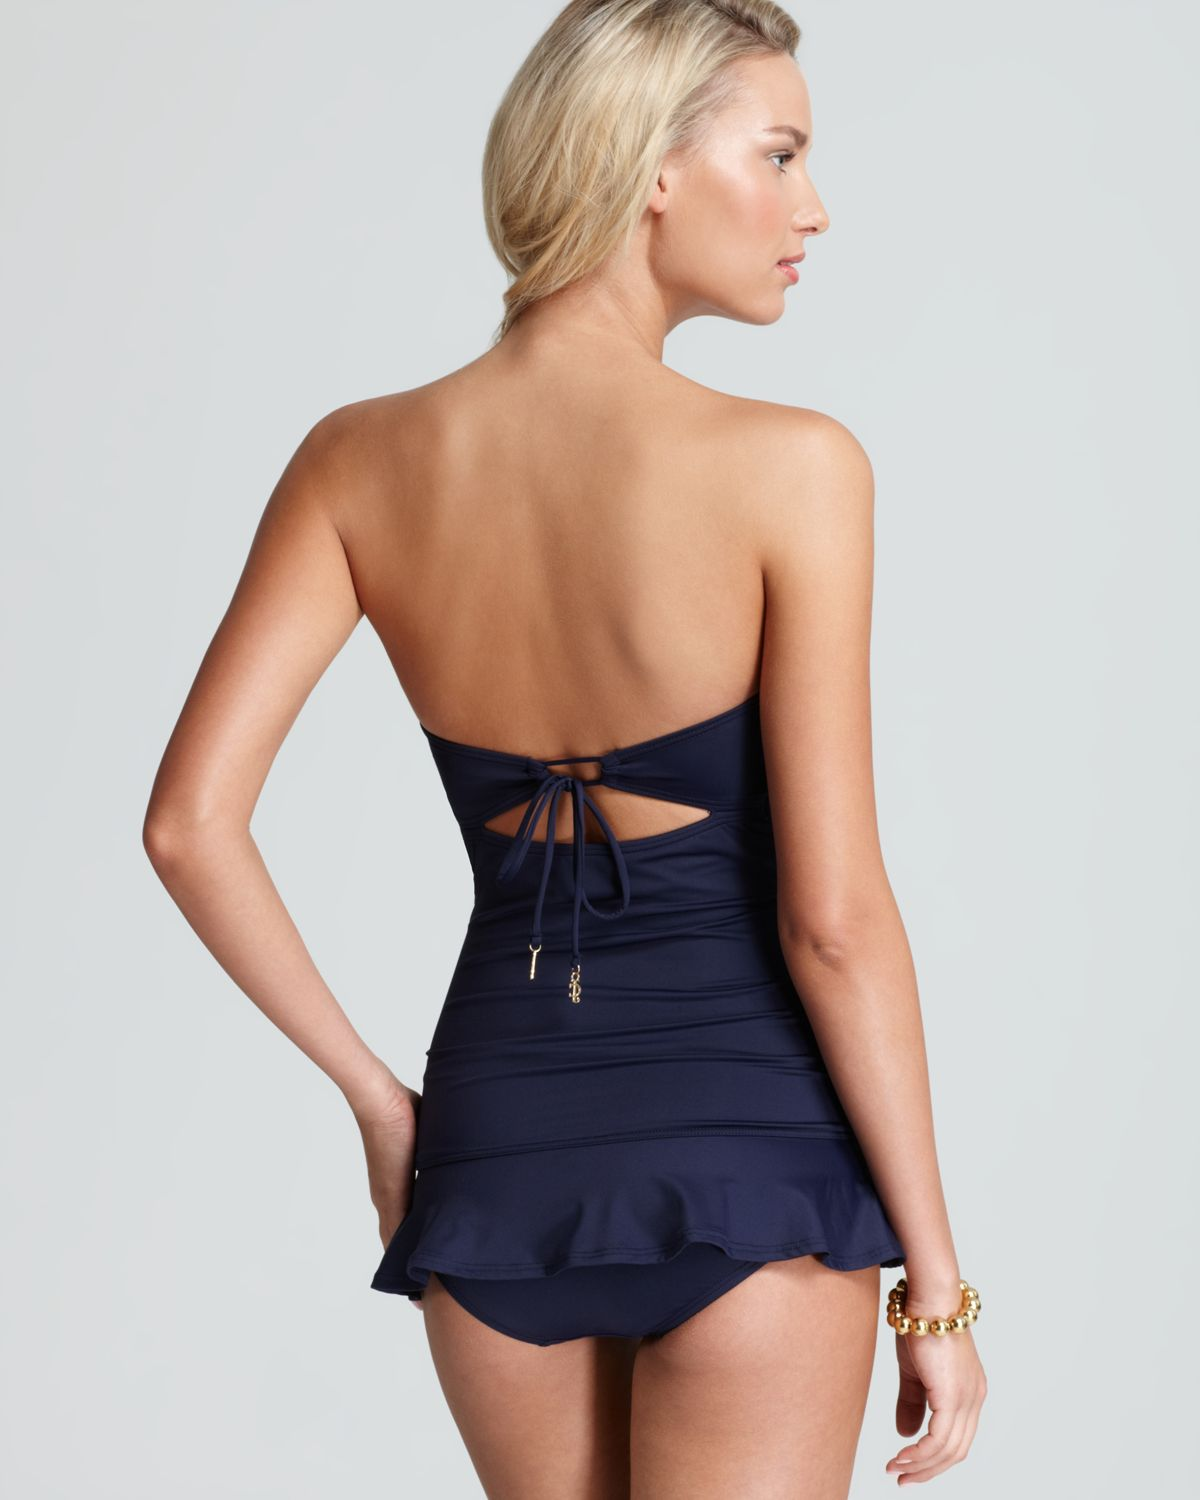 cdb43b0ed25c8 Juicy Couture Gold Link Bandeau Swimdress One Piece in Blue - Lyst